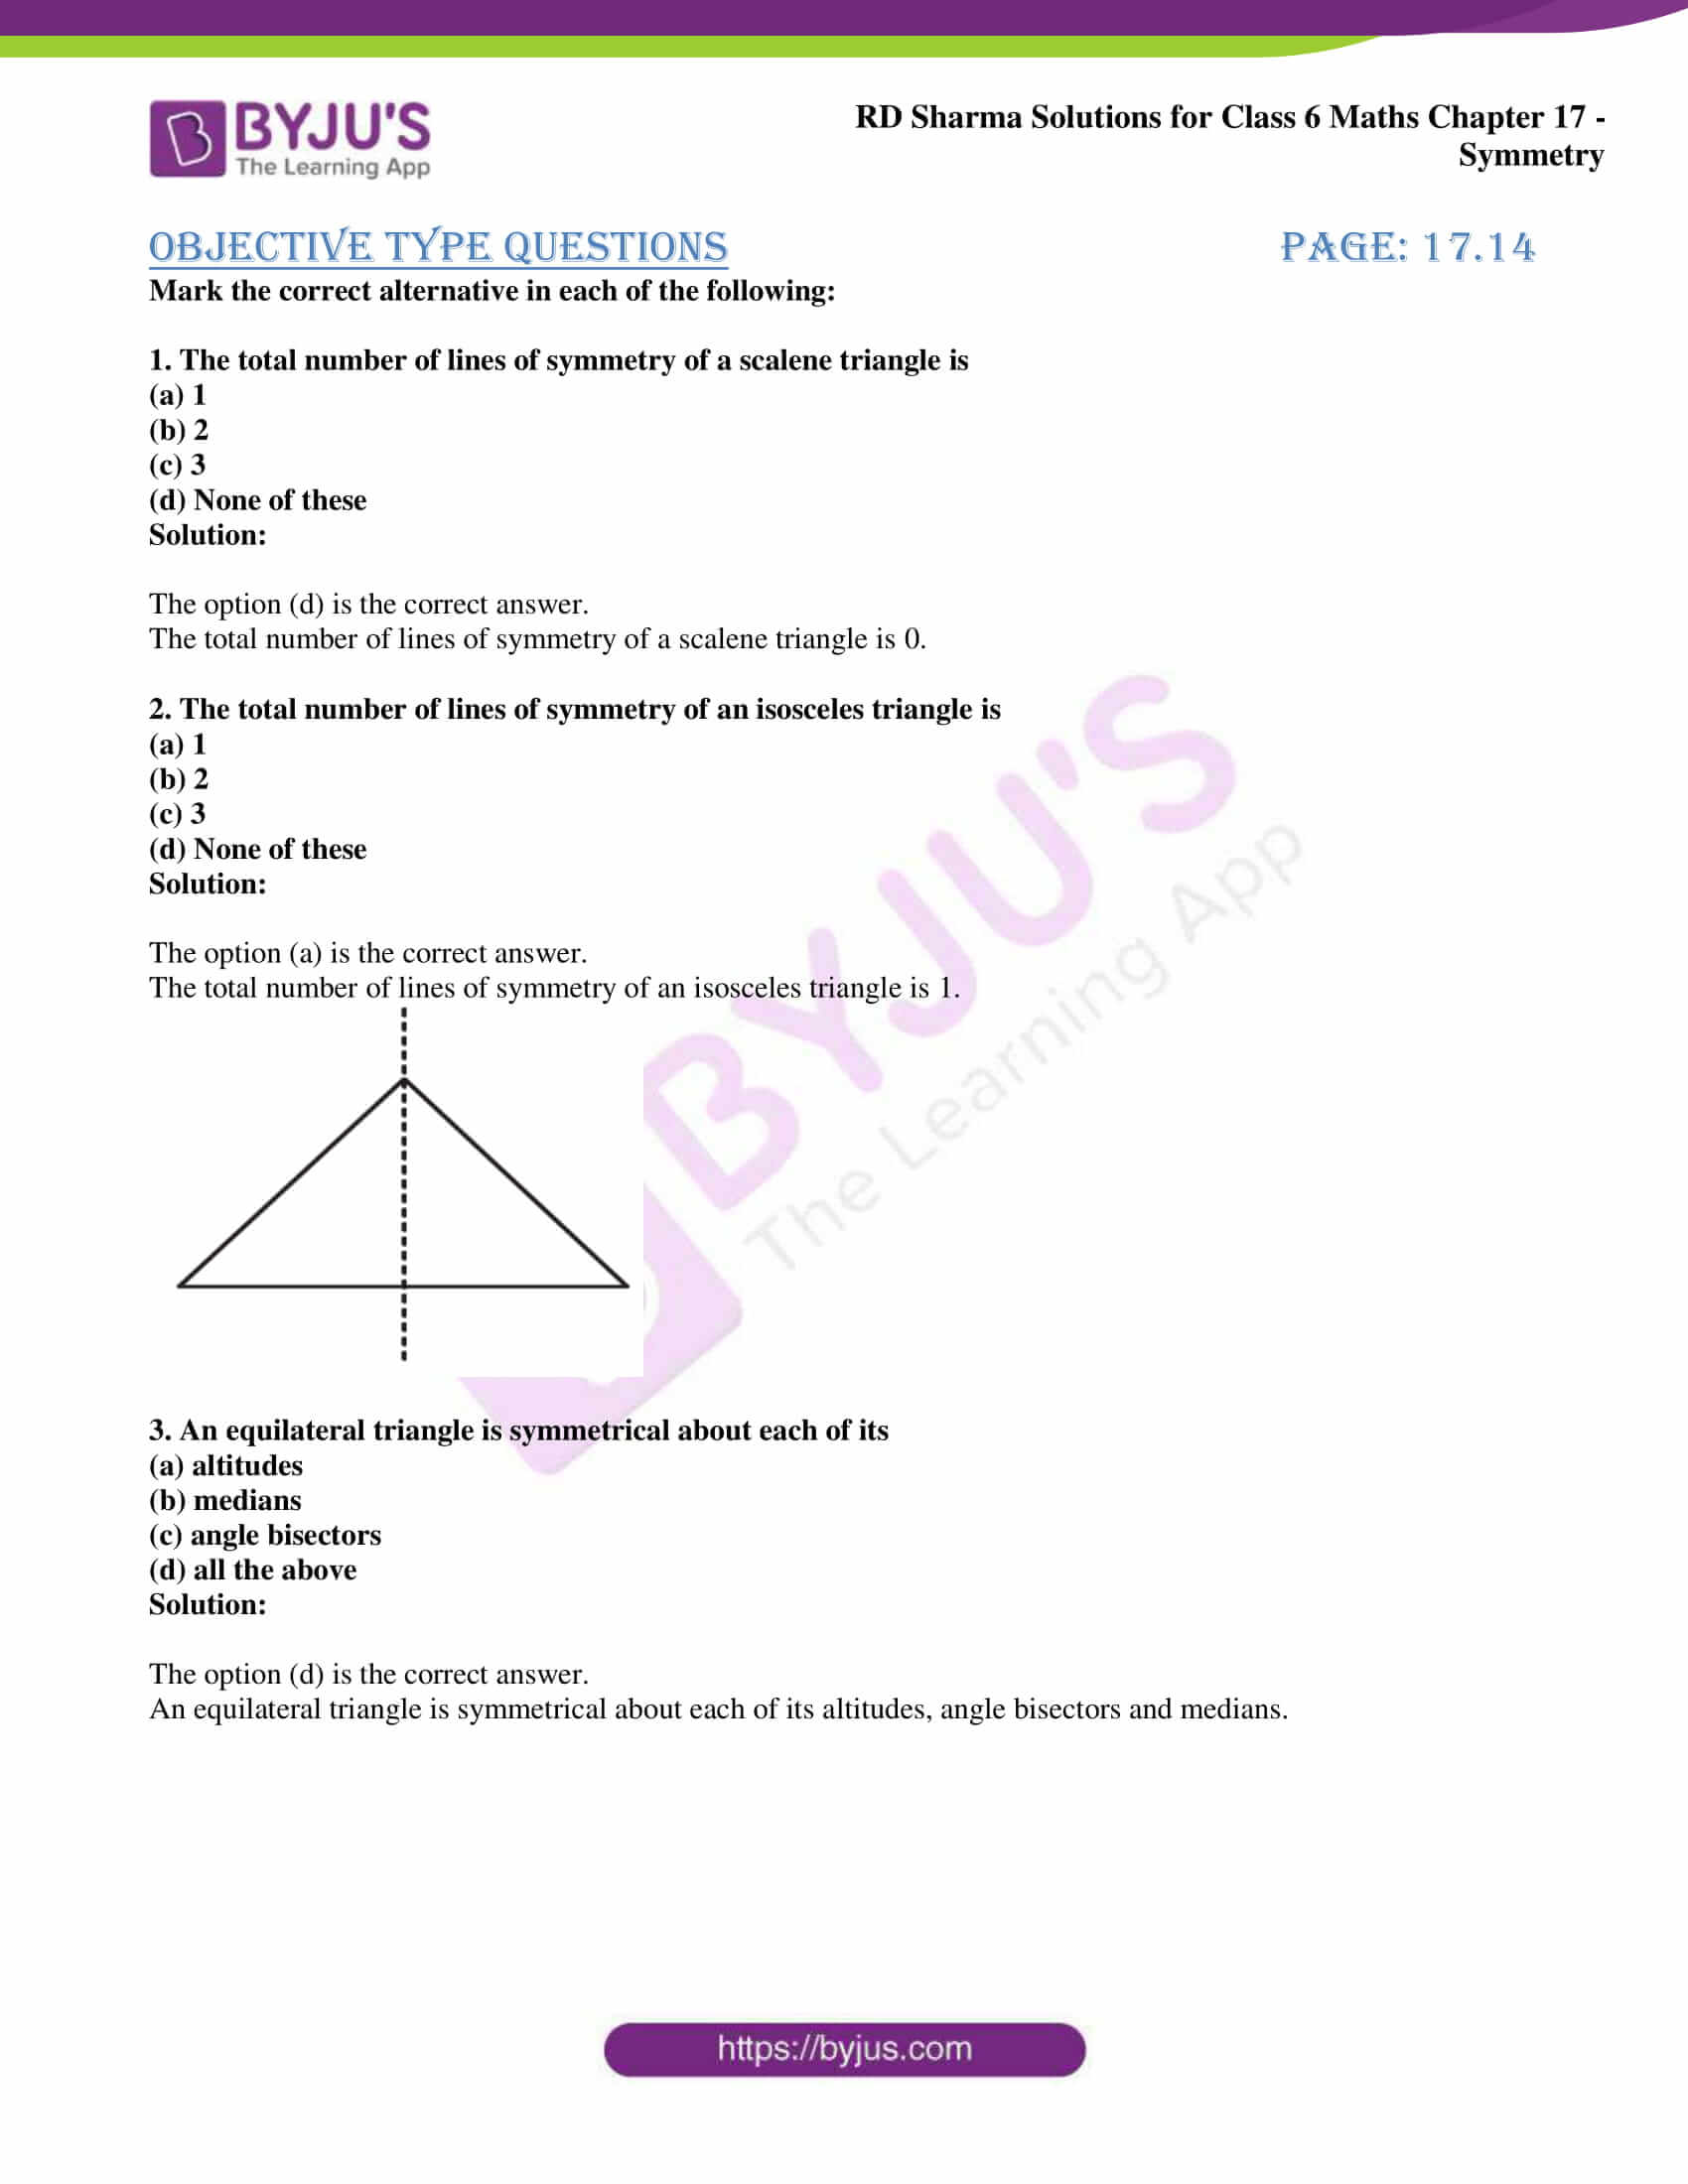 rd sharma solutions nov2020 class 6 maths chapter 17 exercise obj 1